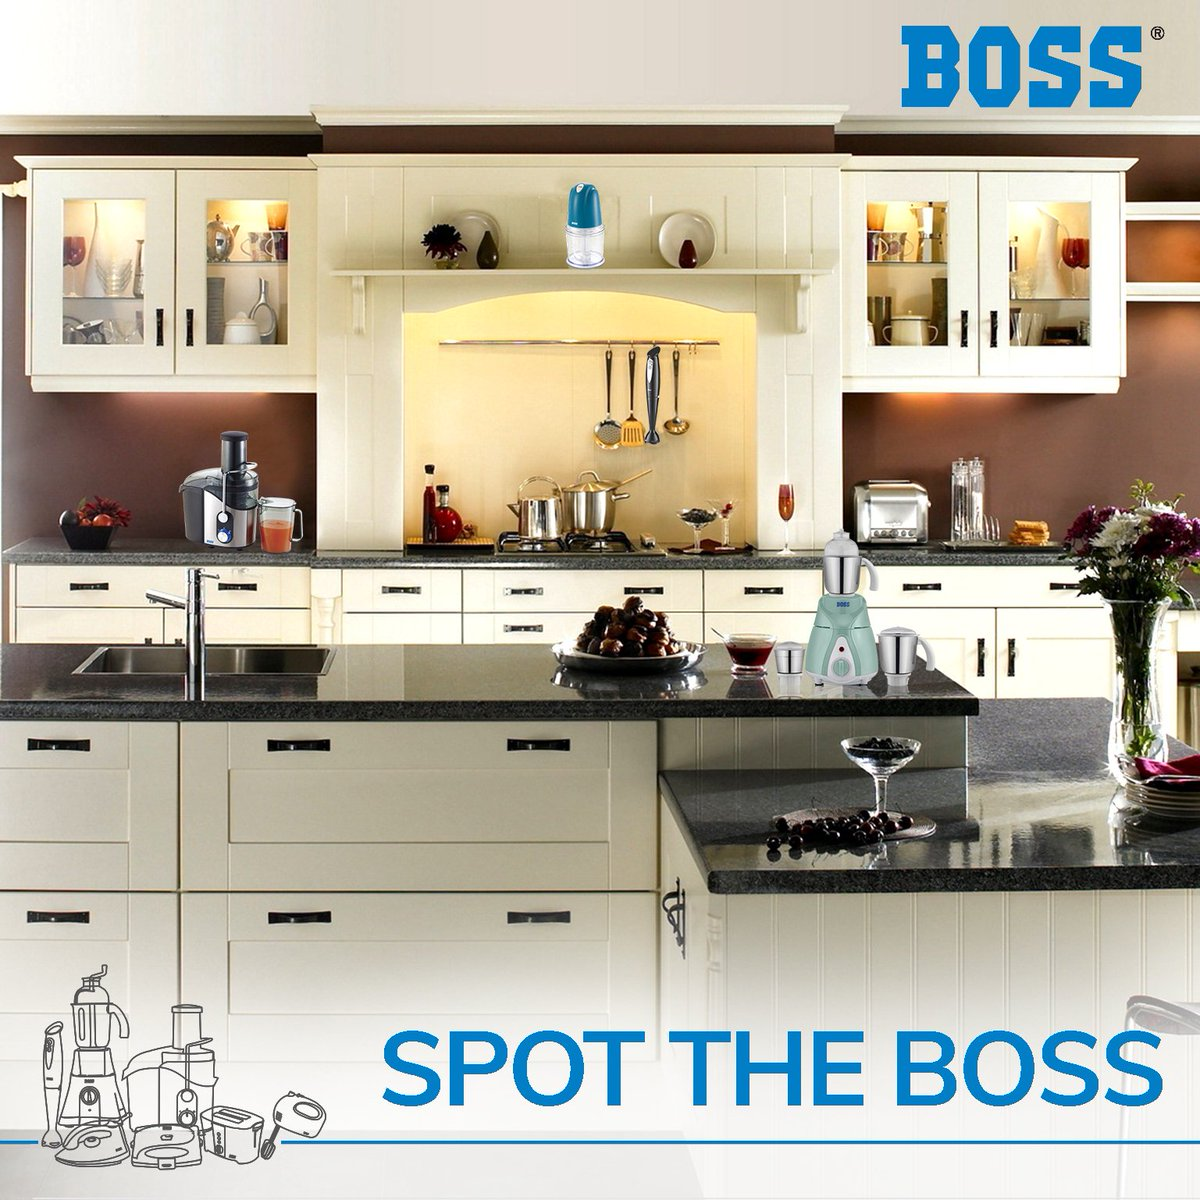 Boss Home Appliances On Twitter How Many Boss Home